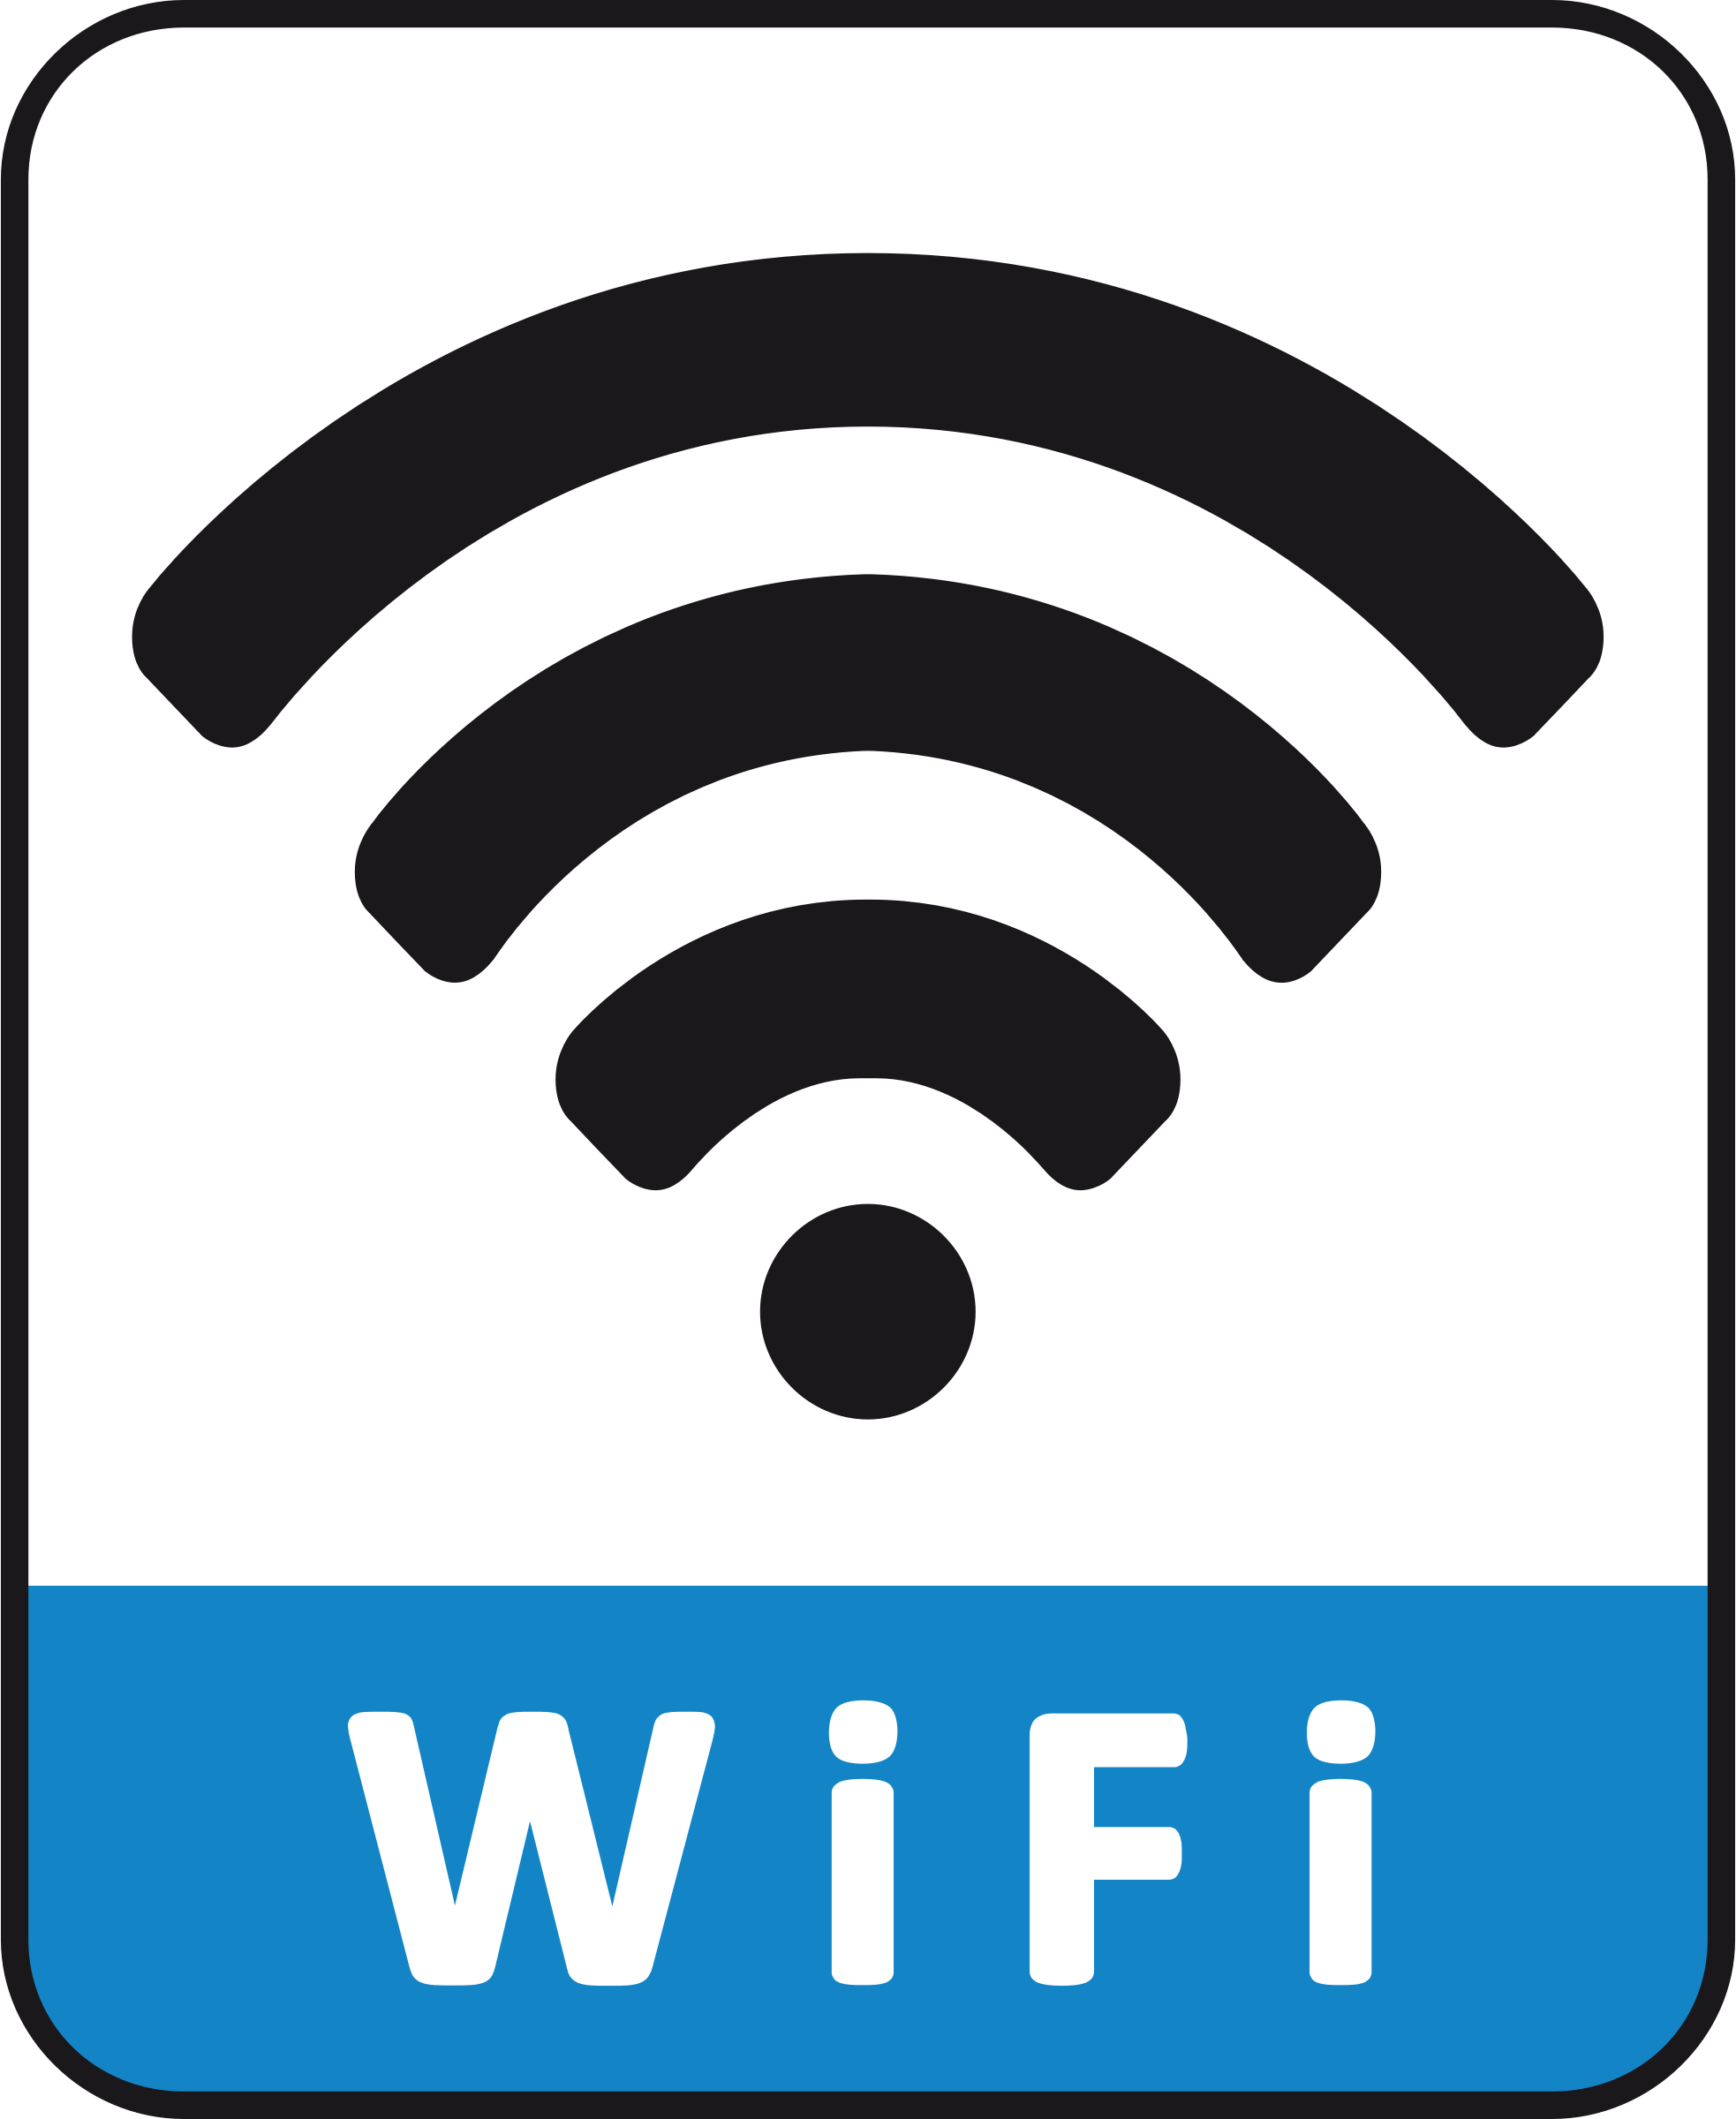 Wifi connection symbol vector file image - Free stock ...